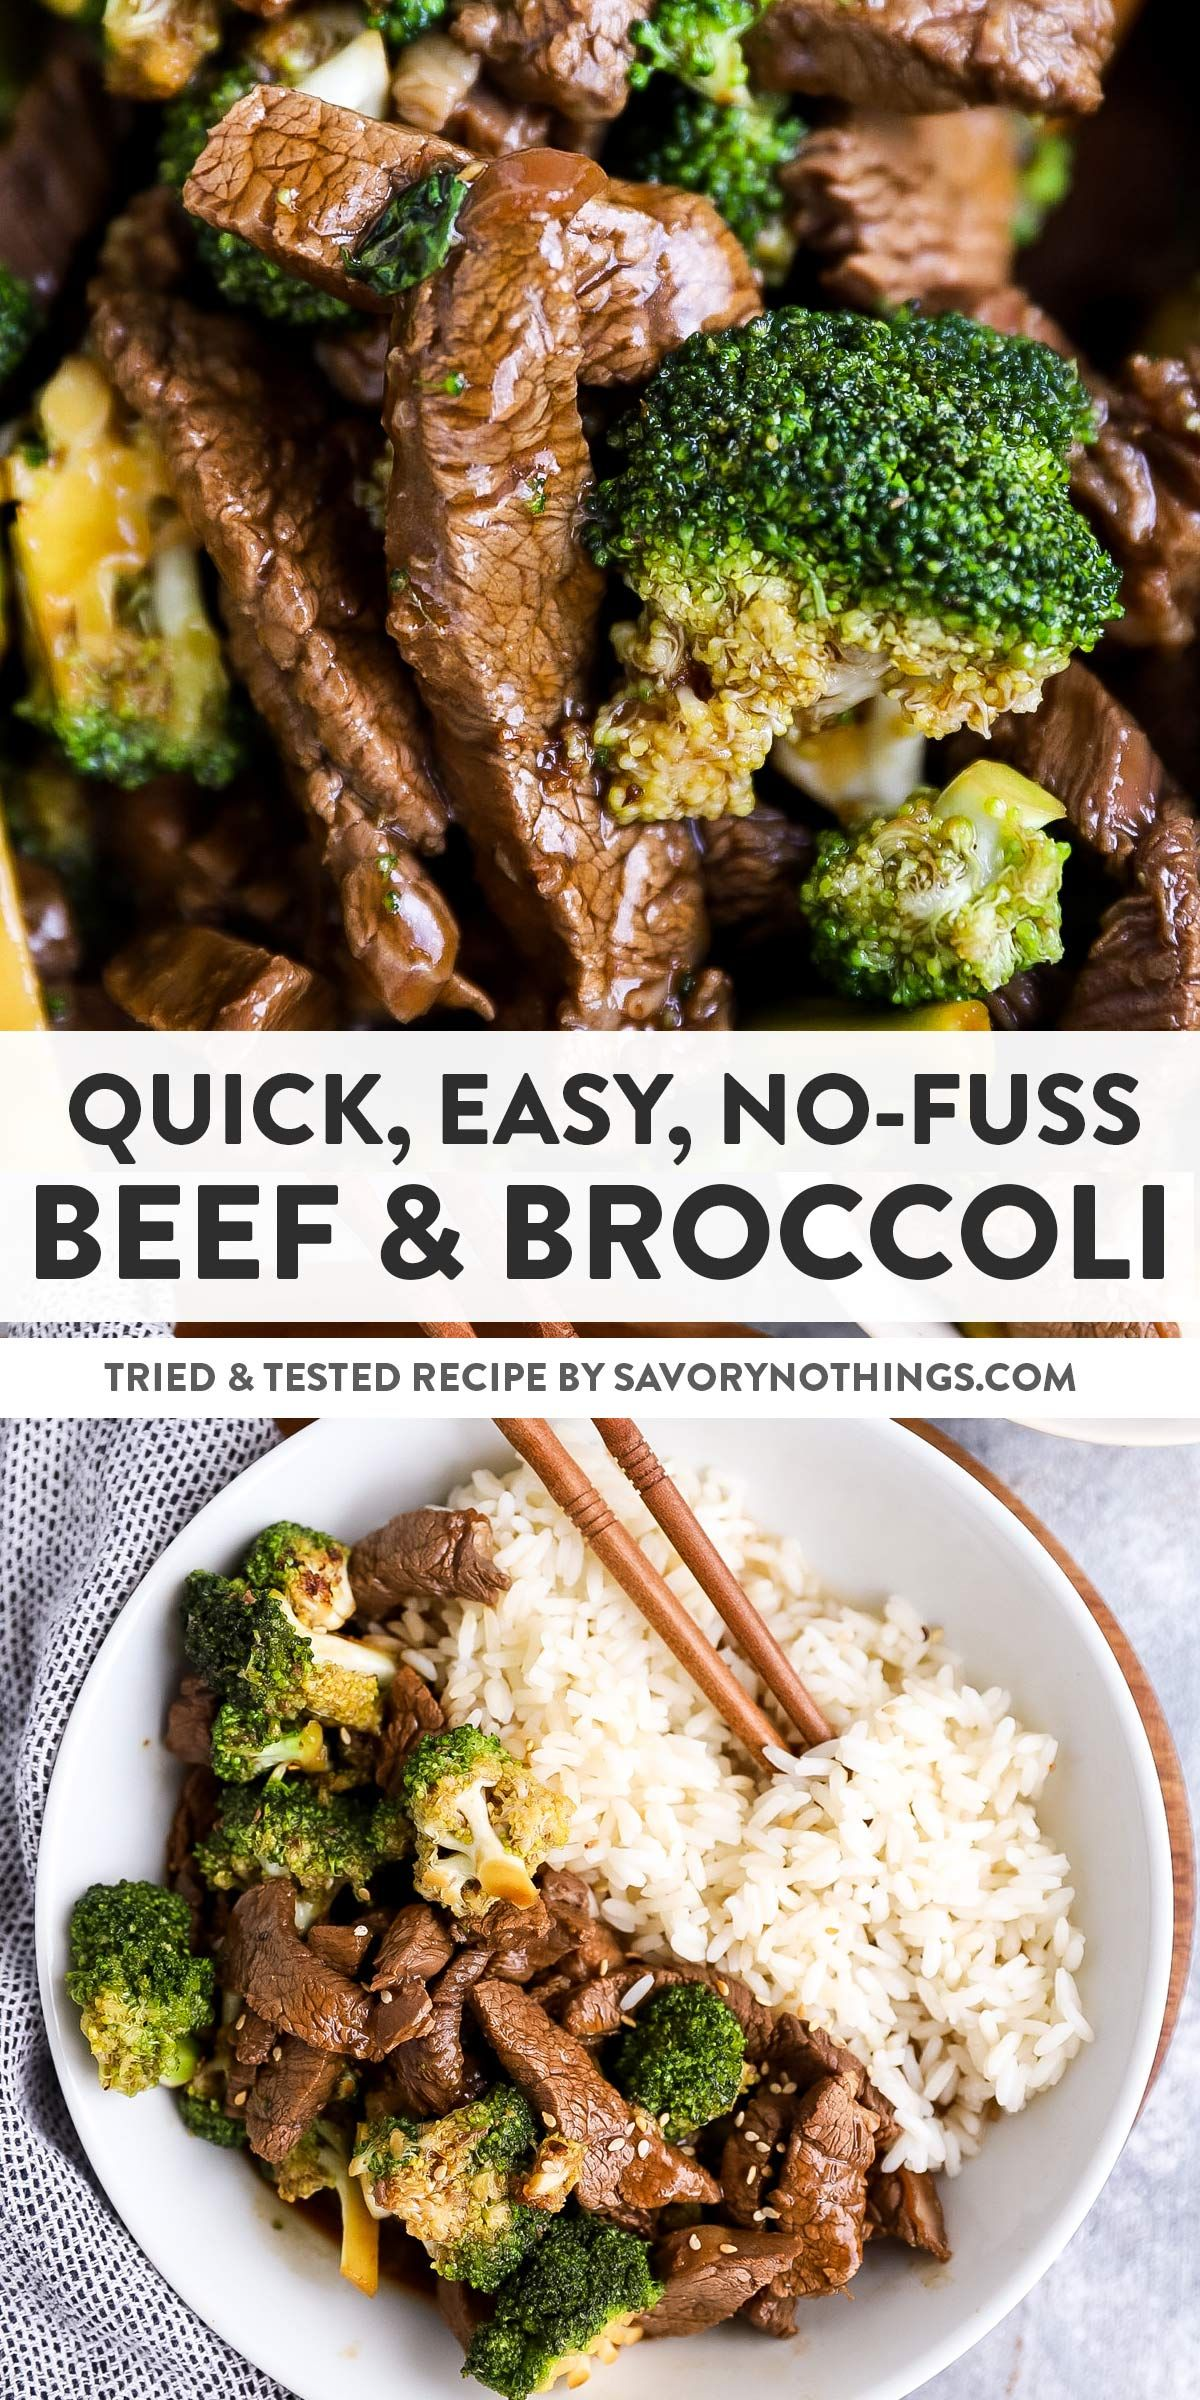 Photo of Easy Beef and Broccoli Stir Fry